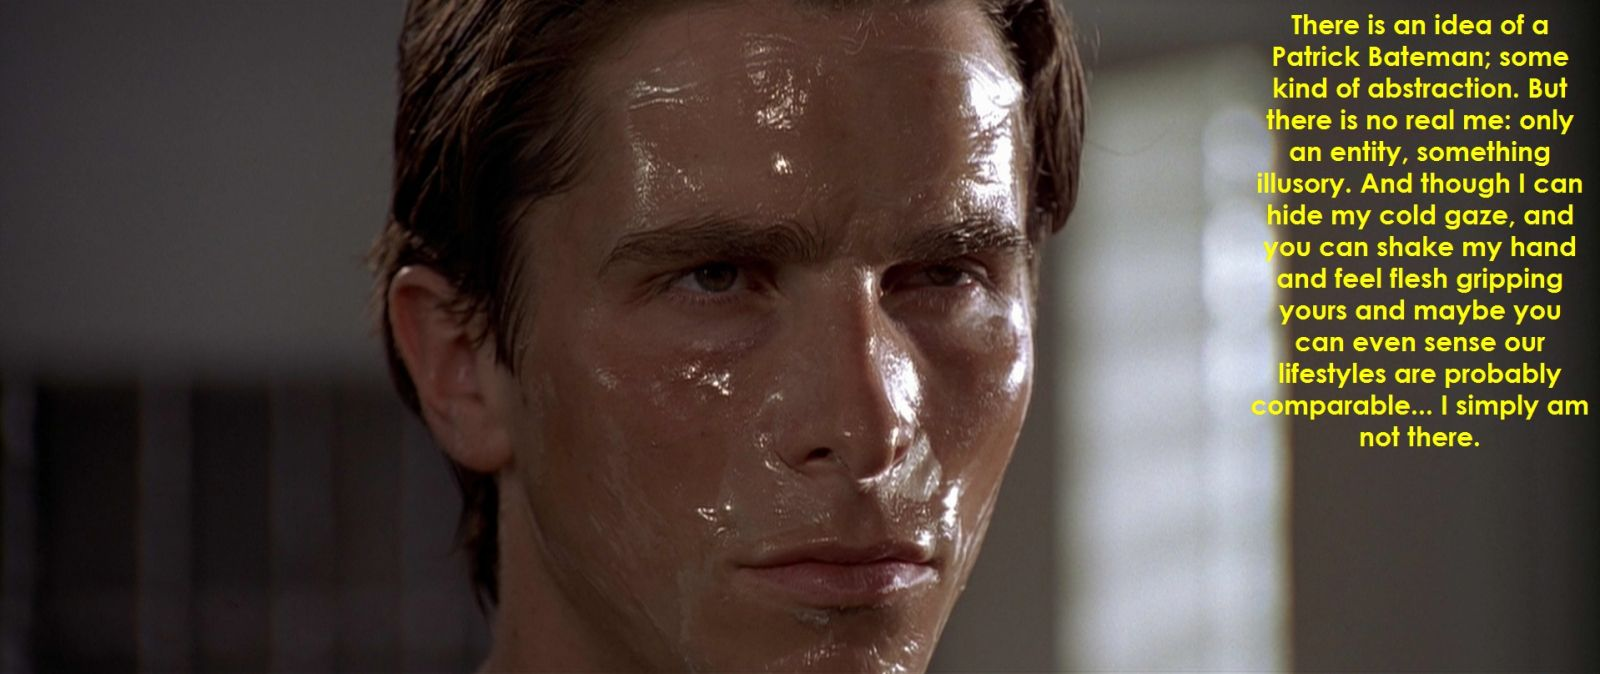 American Psycho Quotes The Semidaily Horror Movie Quote Of The Dayseptember 25 2013